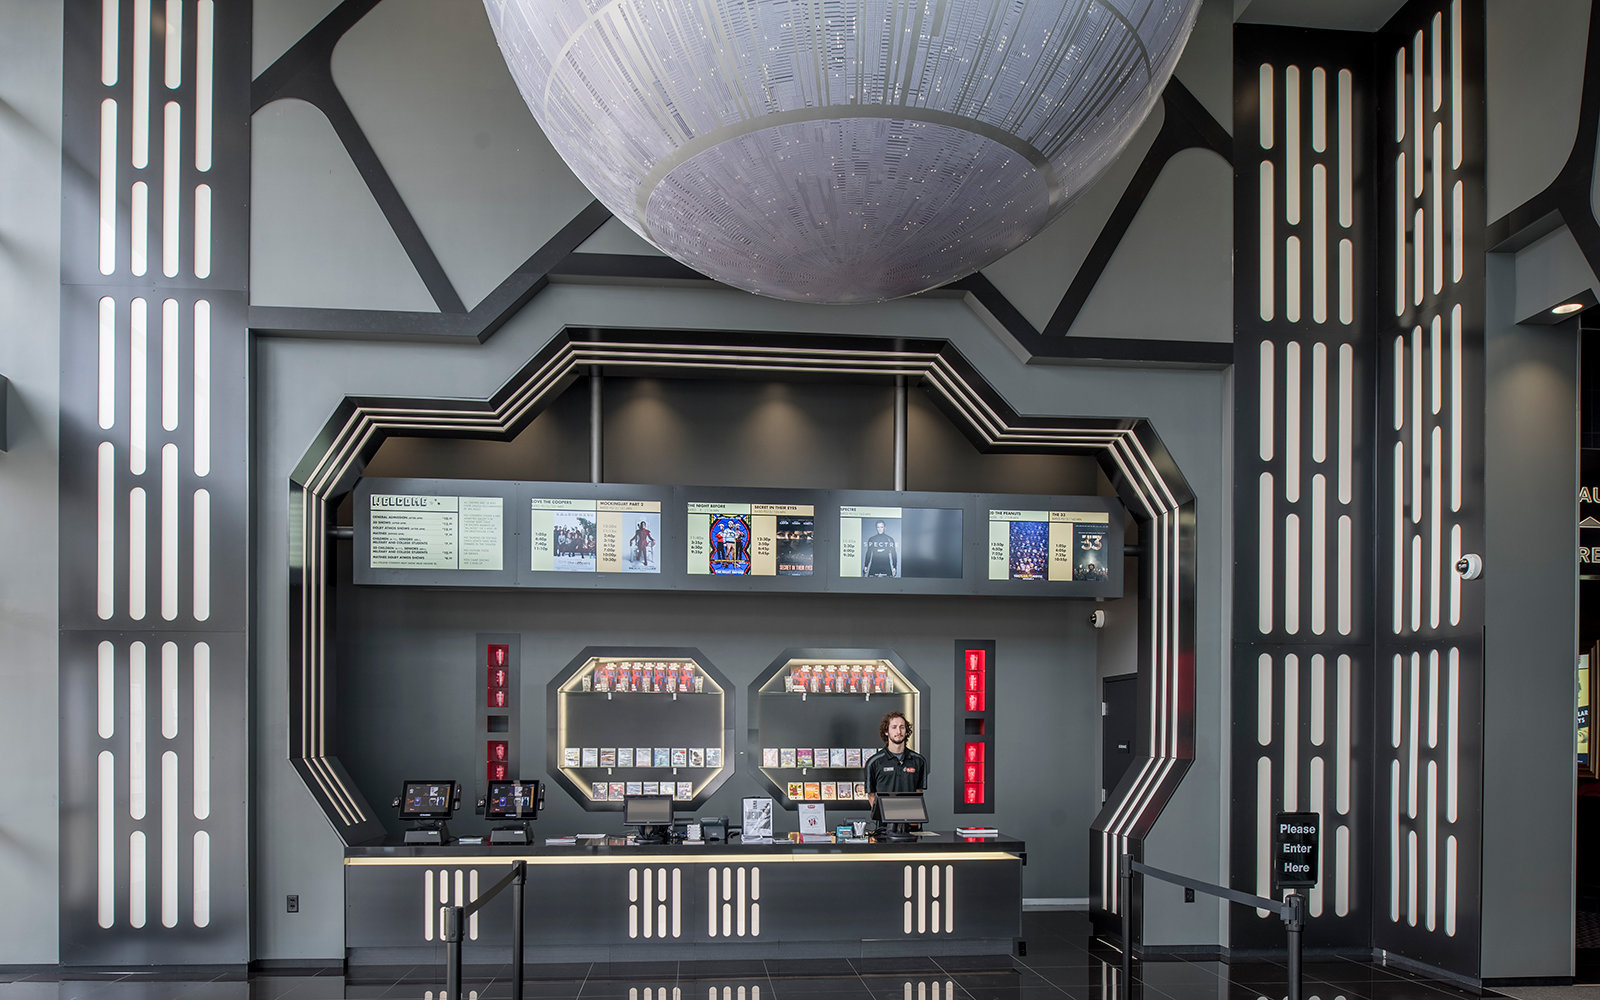 Alamo Drafthouse Star Wars Theater